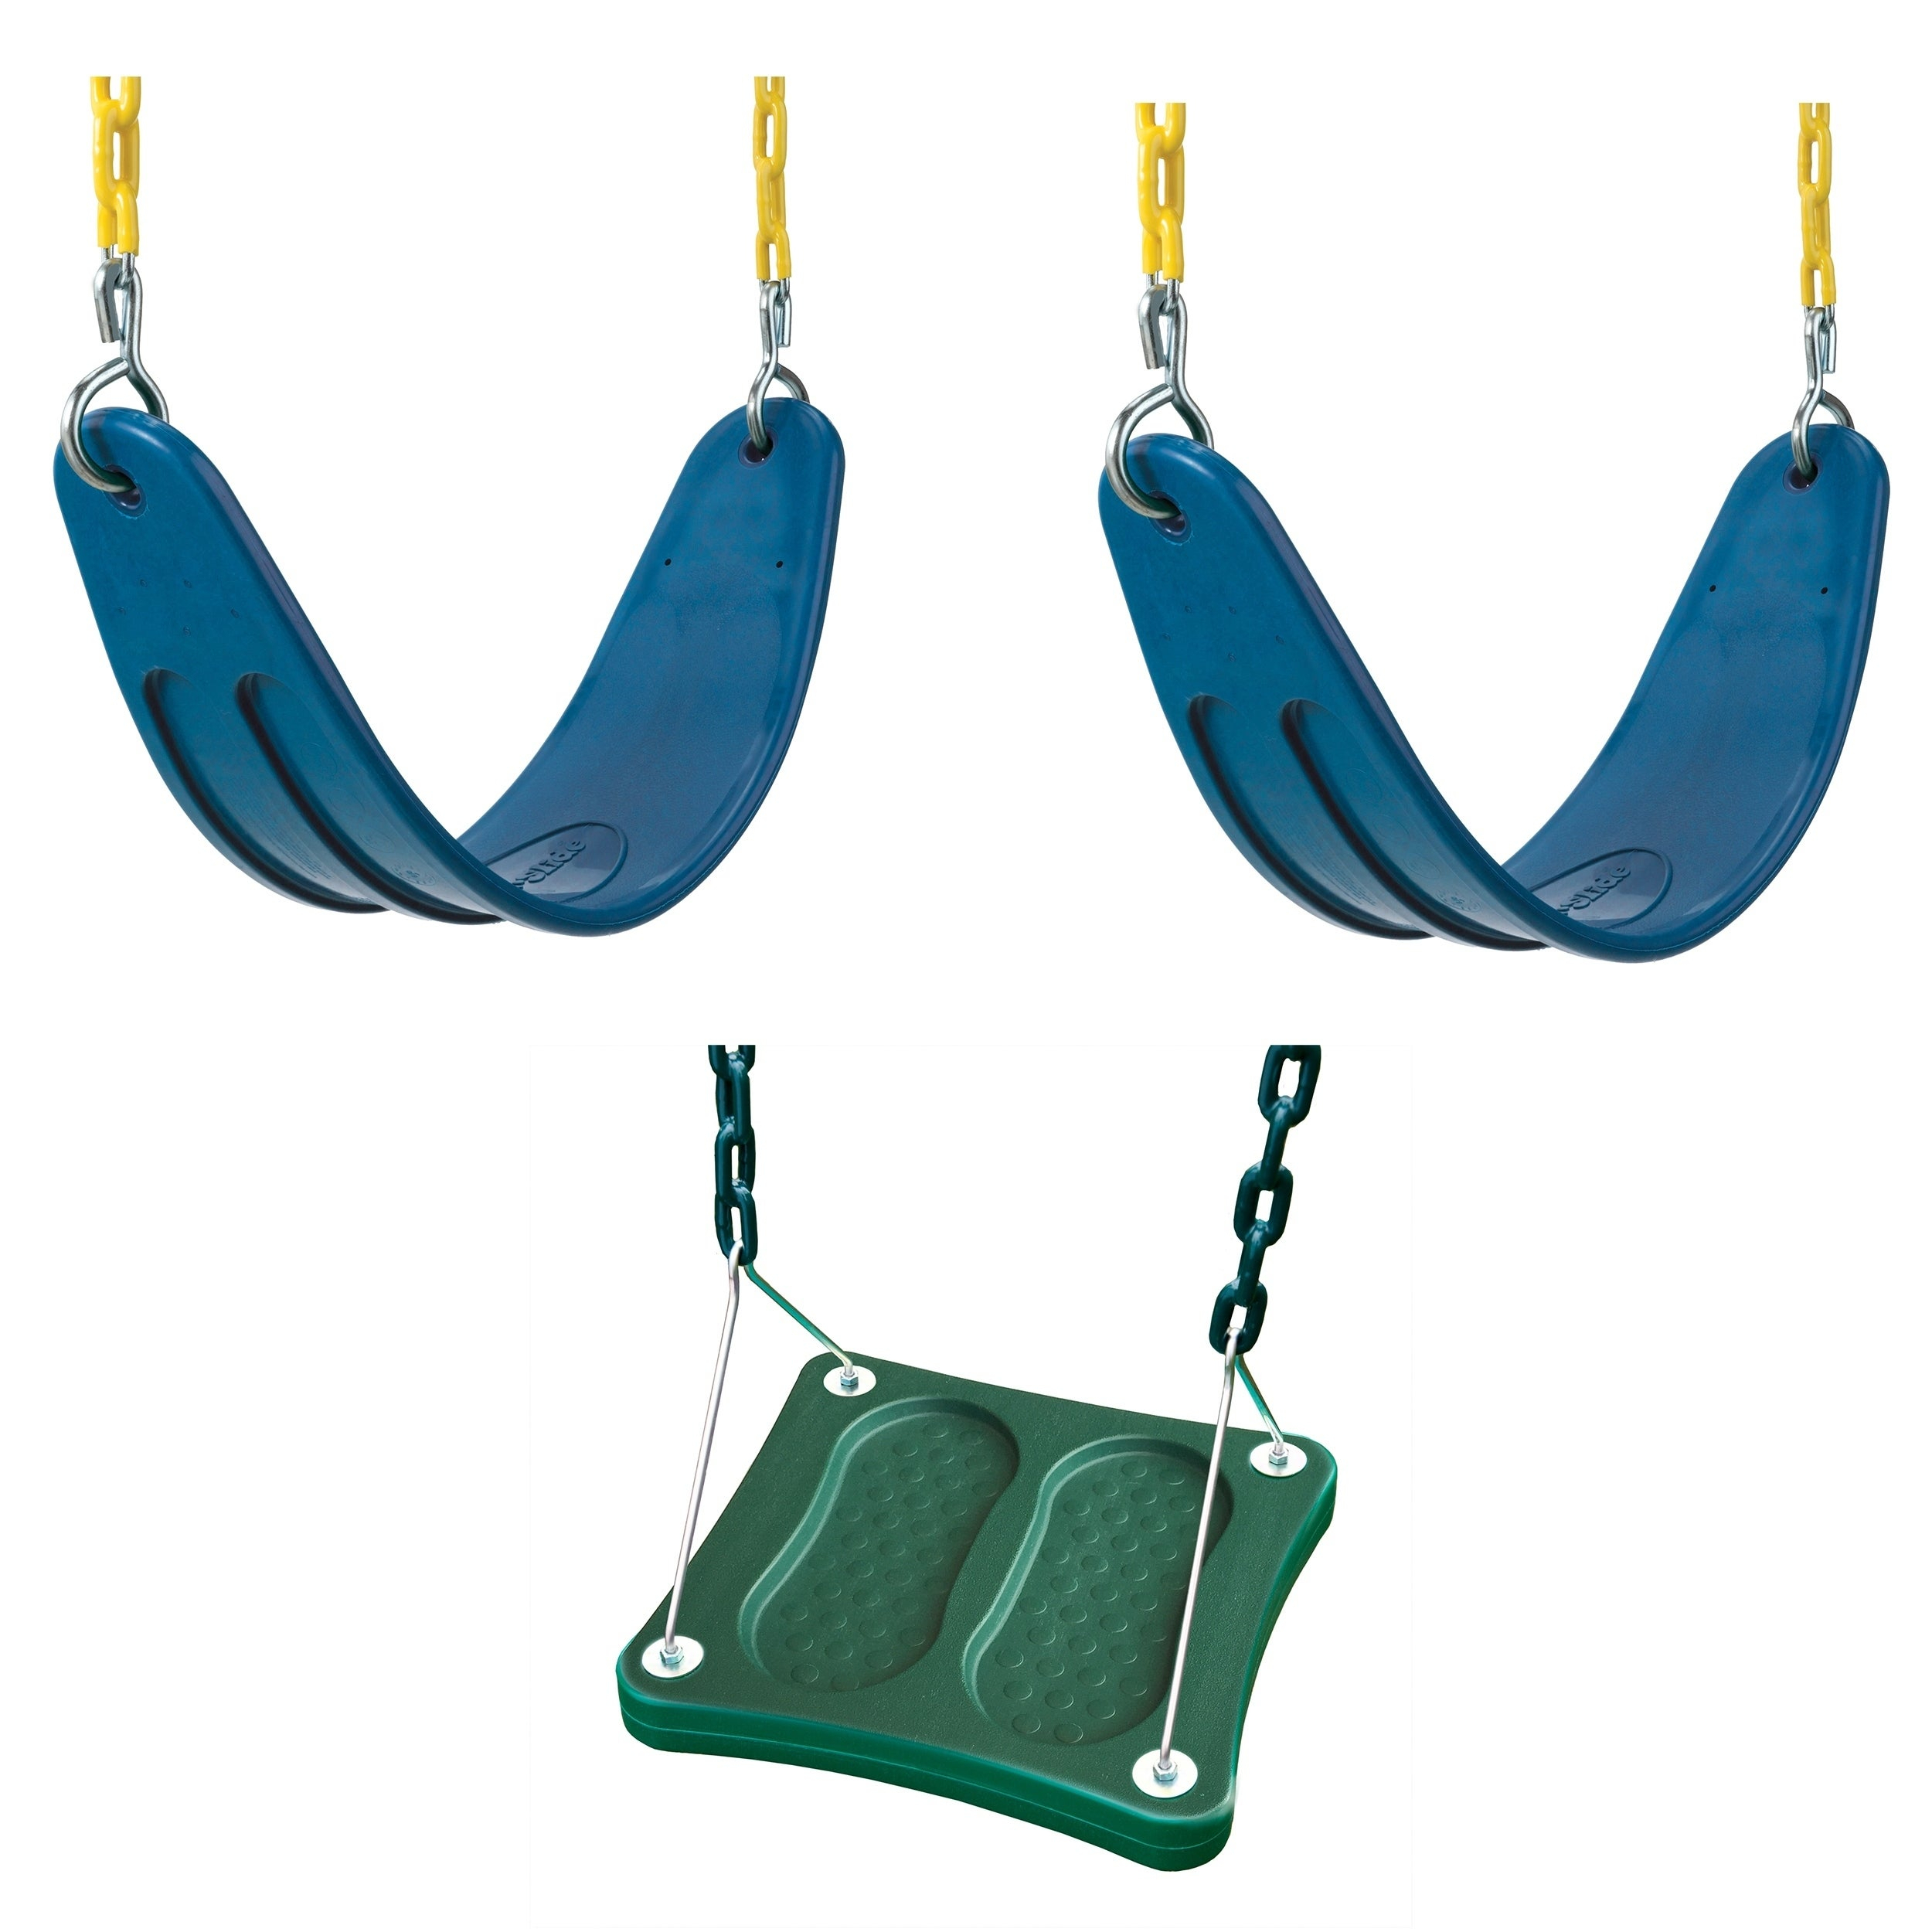 Swing N Slide 2 Blue Extreme Duty Swing Seats With Chains And Stand Up Swing – N/a Within Swing Seats With Chains (View 6 of 25)